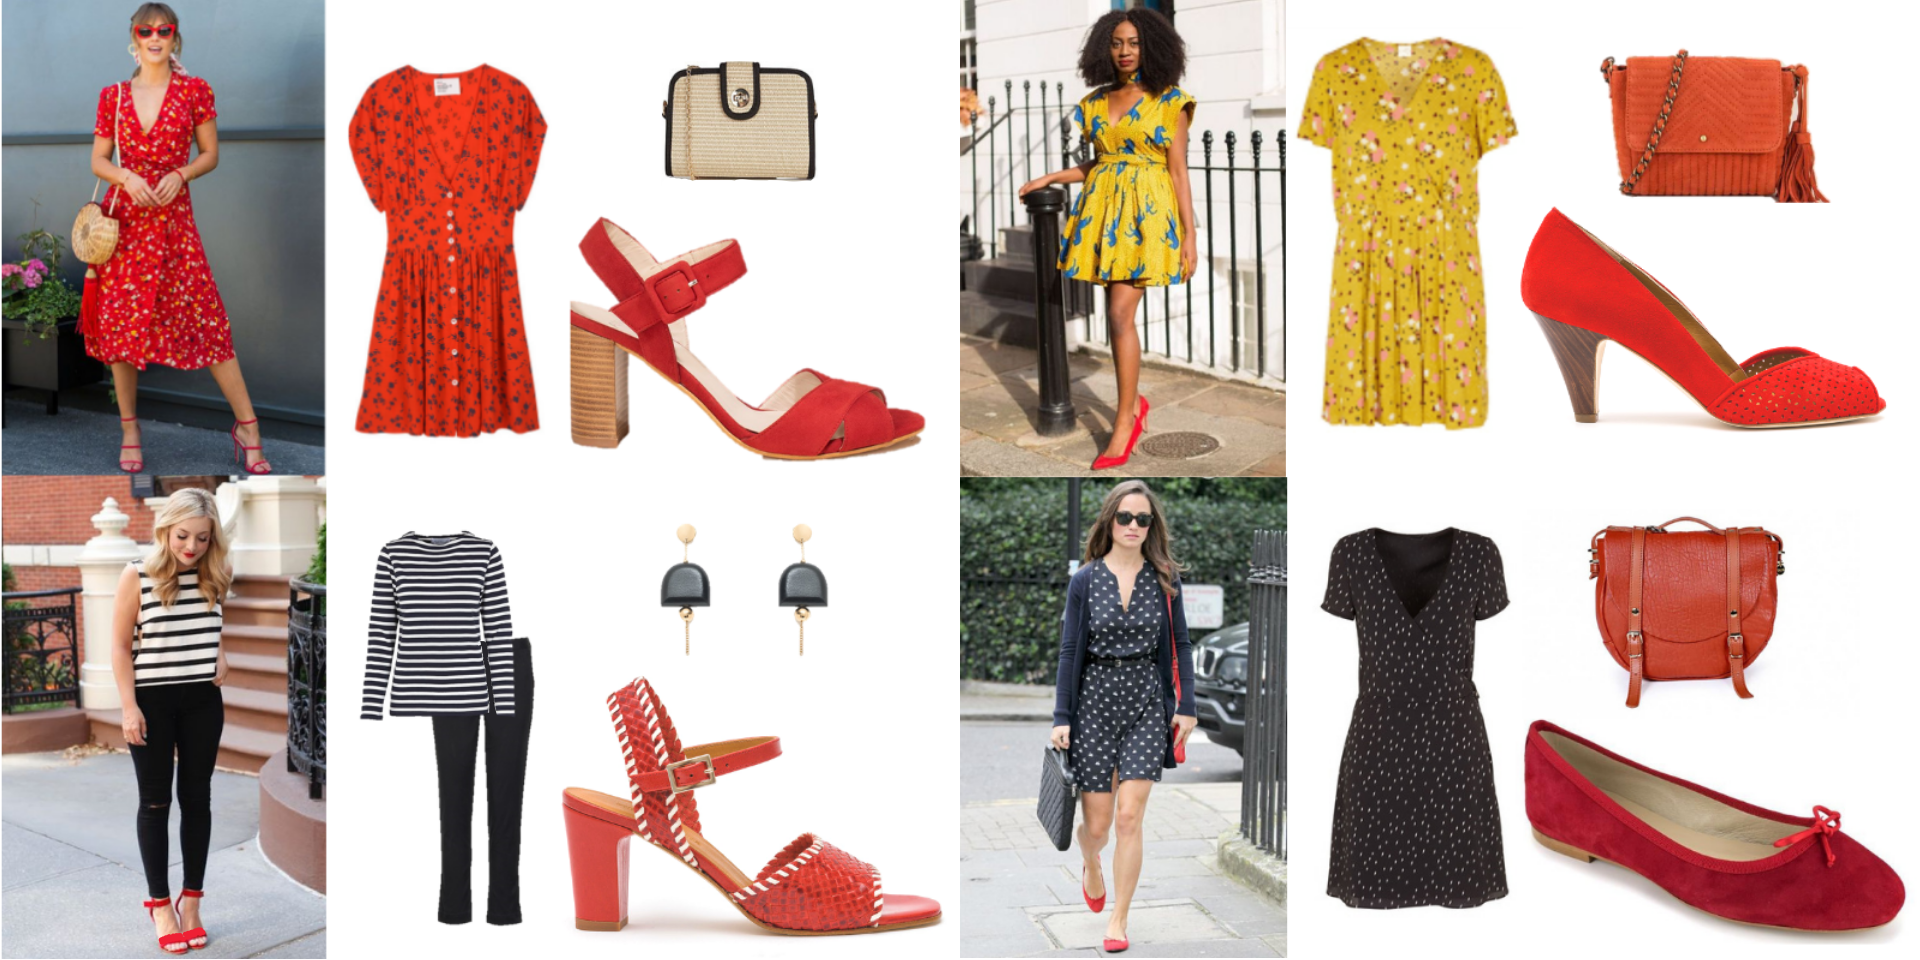 tendance, printemps, chaussures, sandales, couleur, rouge, shopping, malle, box, styliste